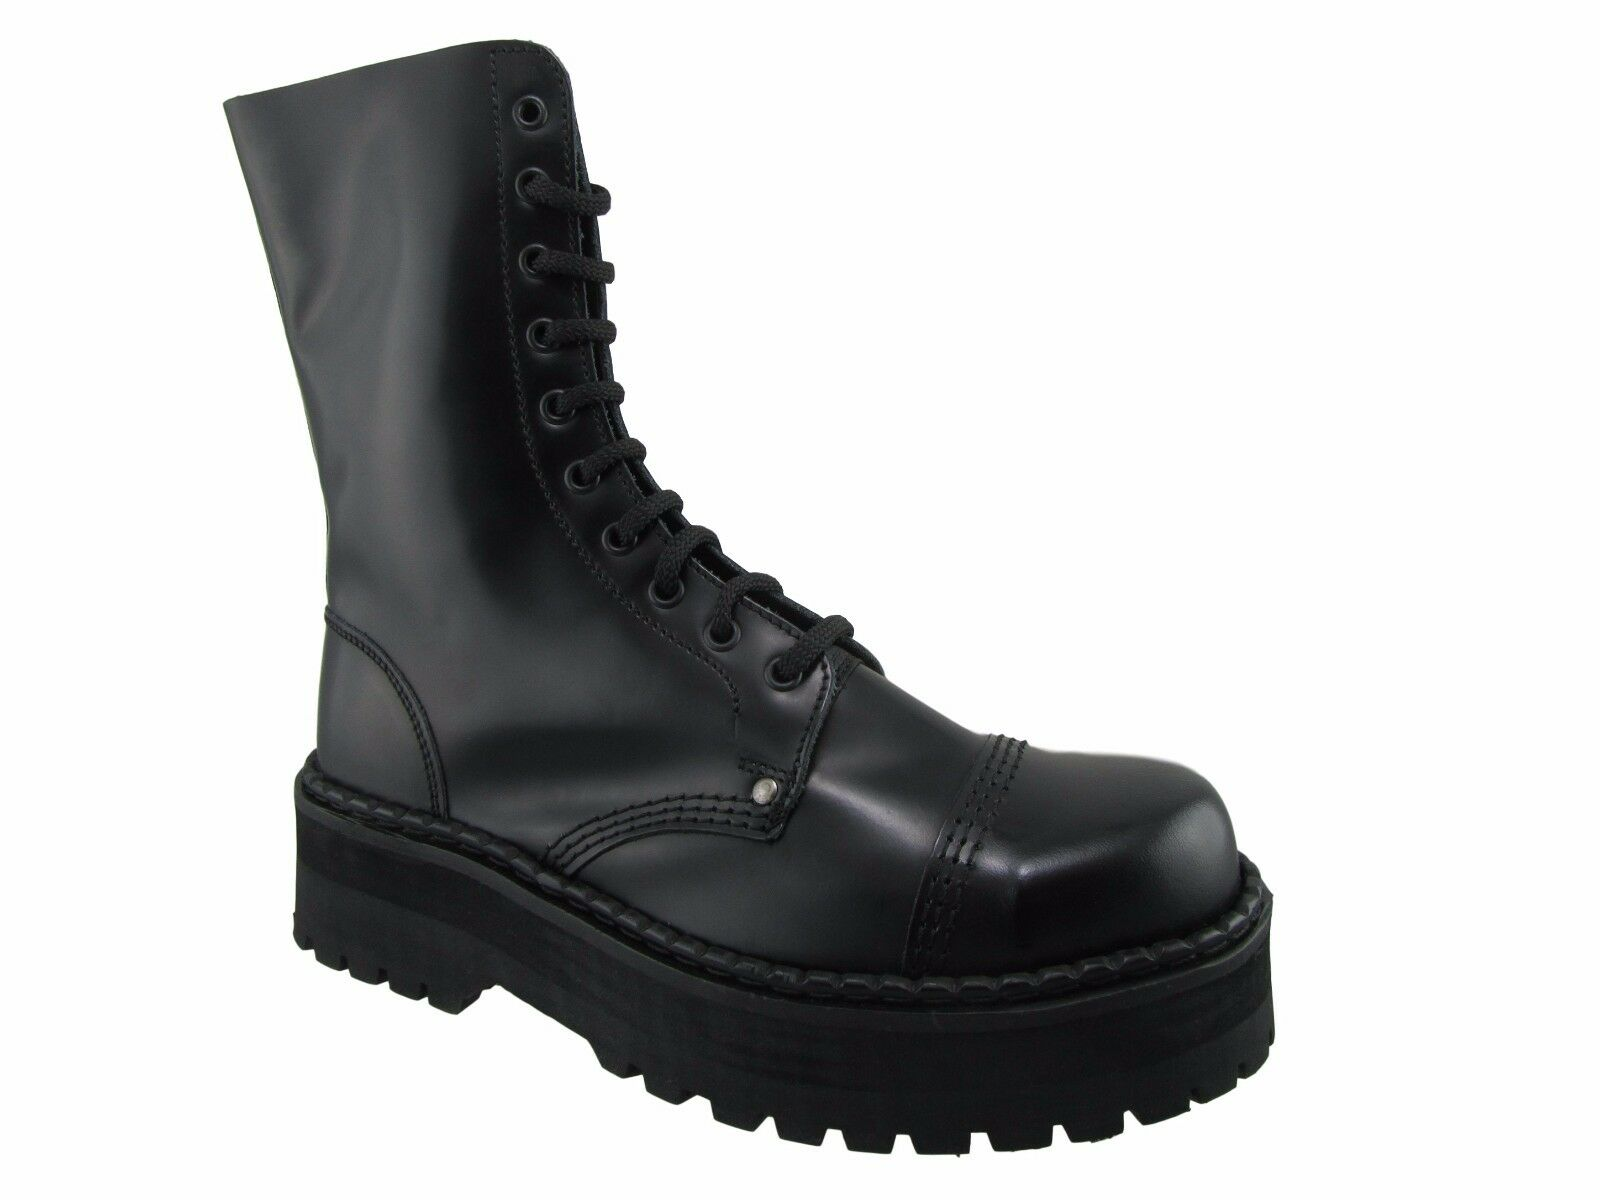 Steel Ground Combat Boots Black Leather 10 Eyeletts Triple Sole Under Cap Safety